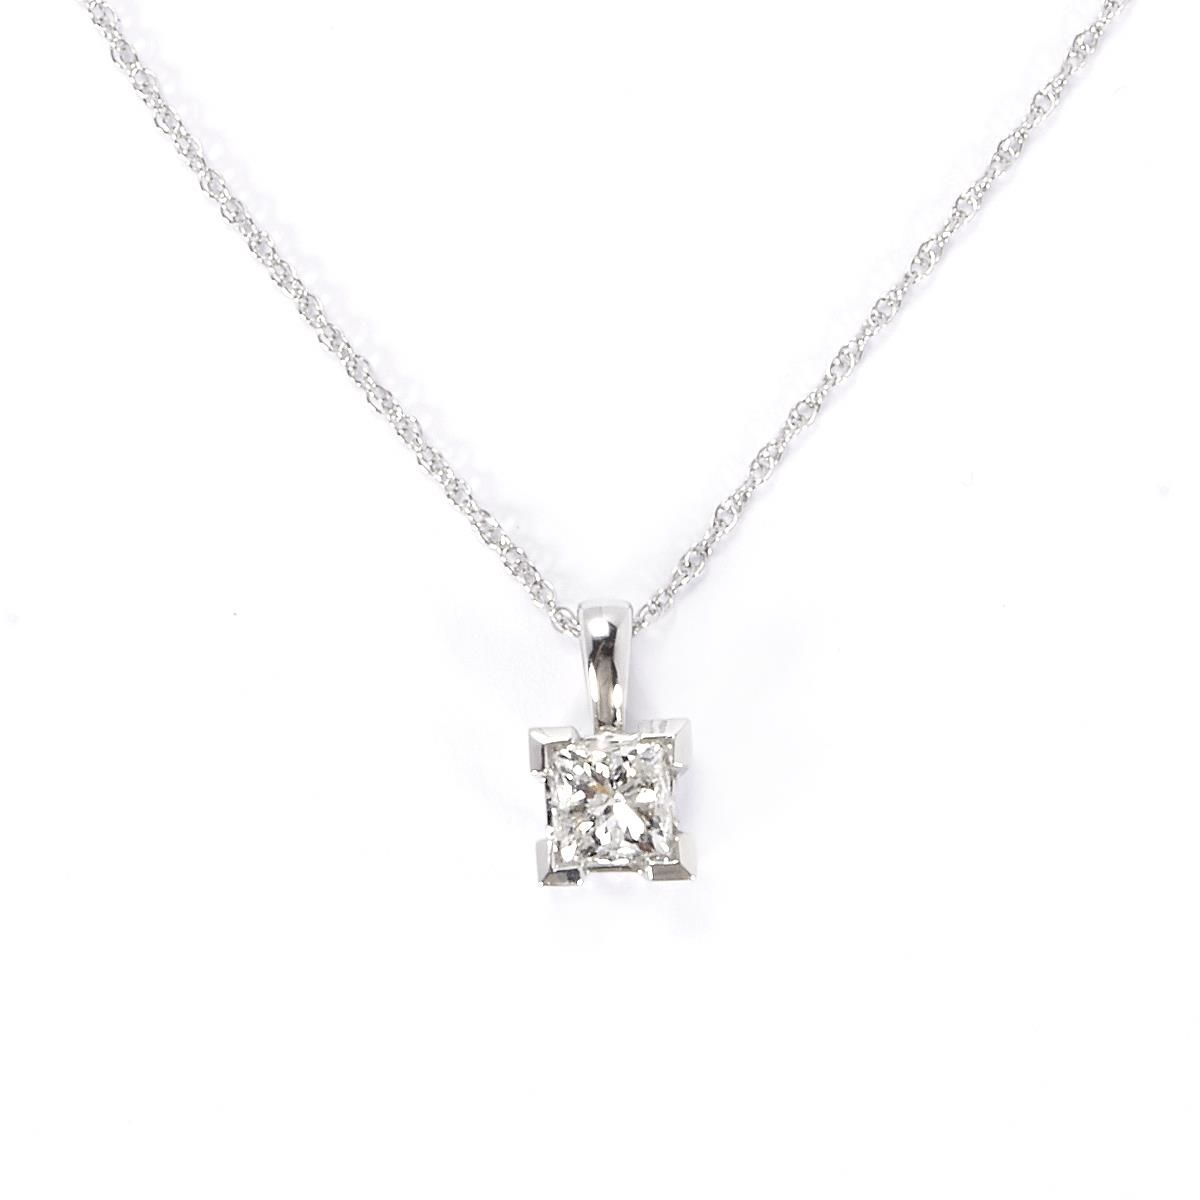 Ct princess cut diamond k white gold pendant necklace